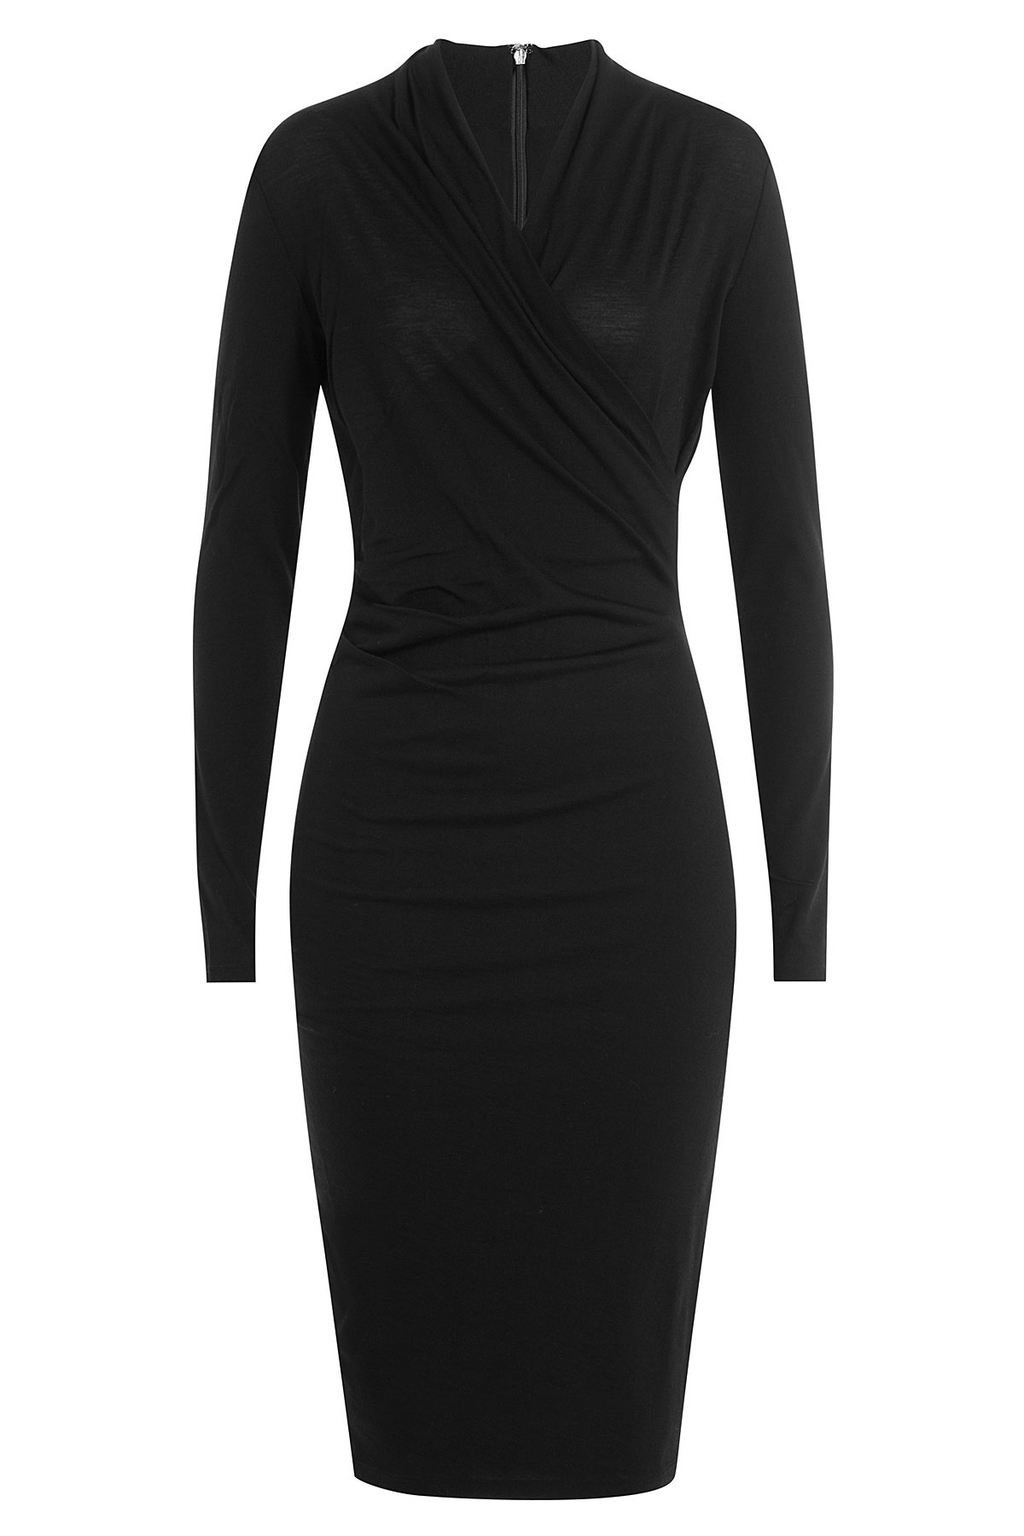 Virgin Wool Dress - style: faux wrap/wrap; neckline: v-neck; pattern: plain; predominant colour: black; occasions: evening; length: on the knee; fit: body skimming; fibres: wool - 100%; sleeve length: long sleeve; sleeve style: standard; pattern type: fabric; texture group: jersey - stretchy/drapey; season: a/w 2016; wardrobe: event